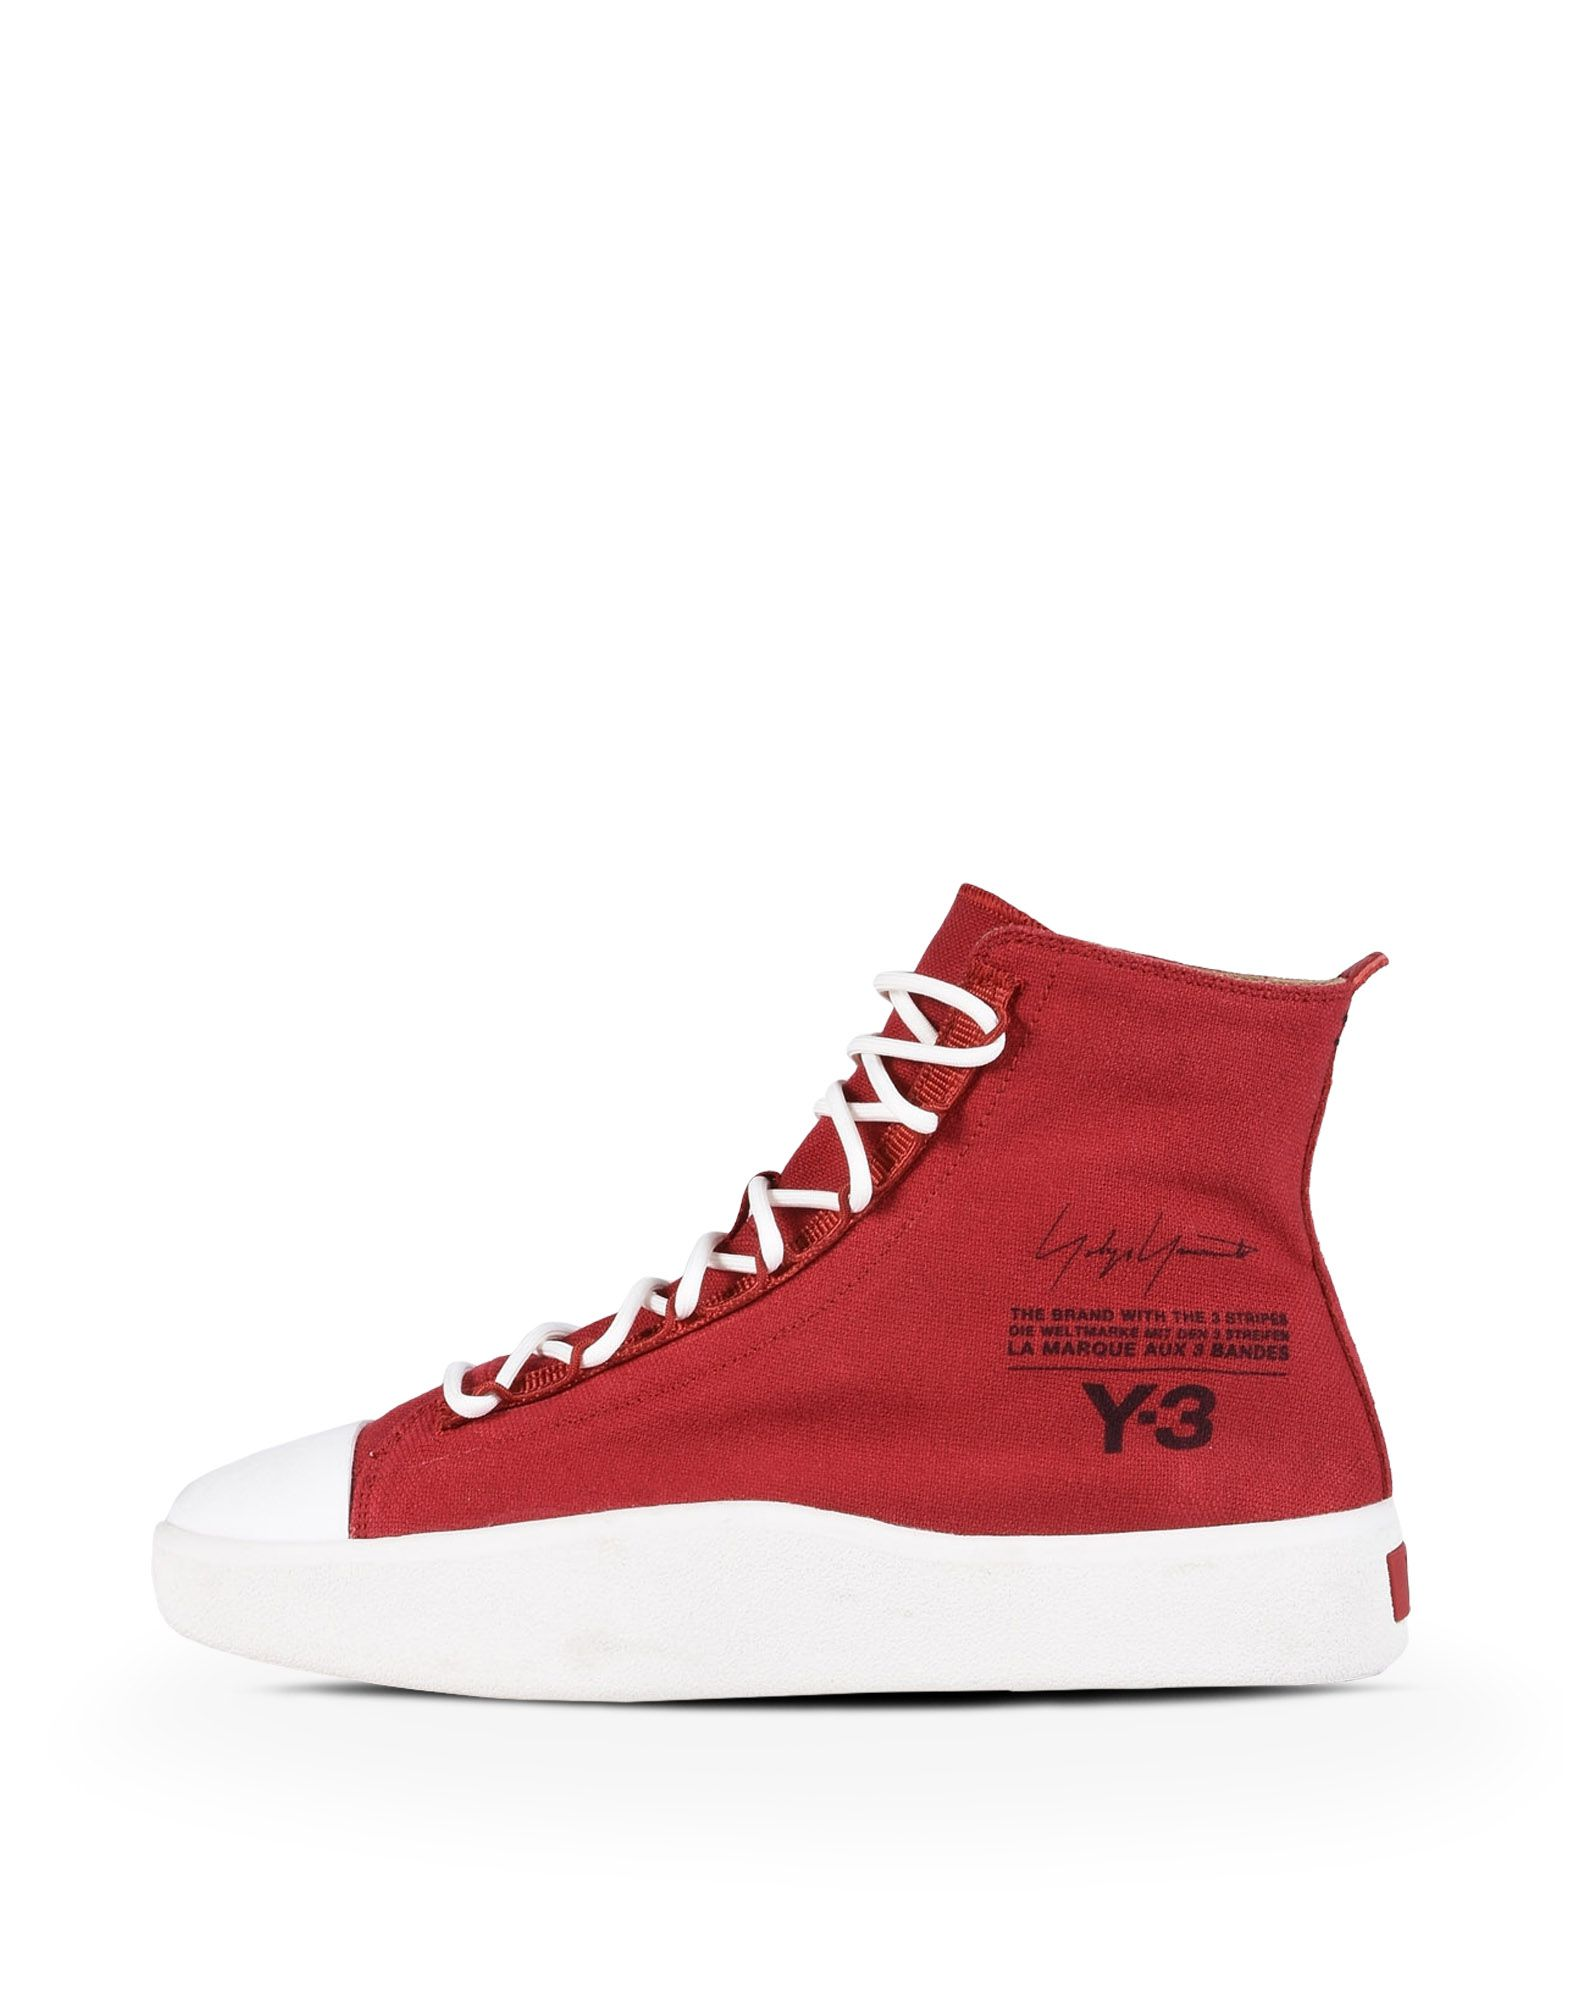 discount best clearance online ebay Y-3 Bashyo sneakers orcdbN